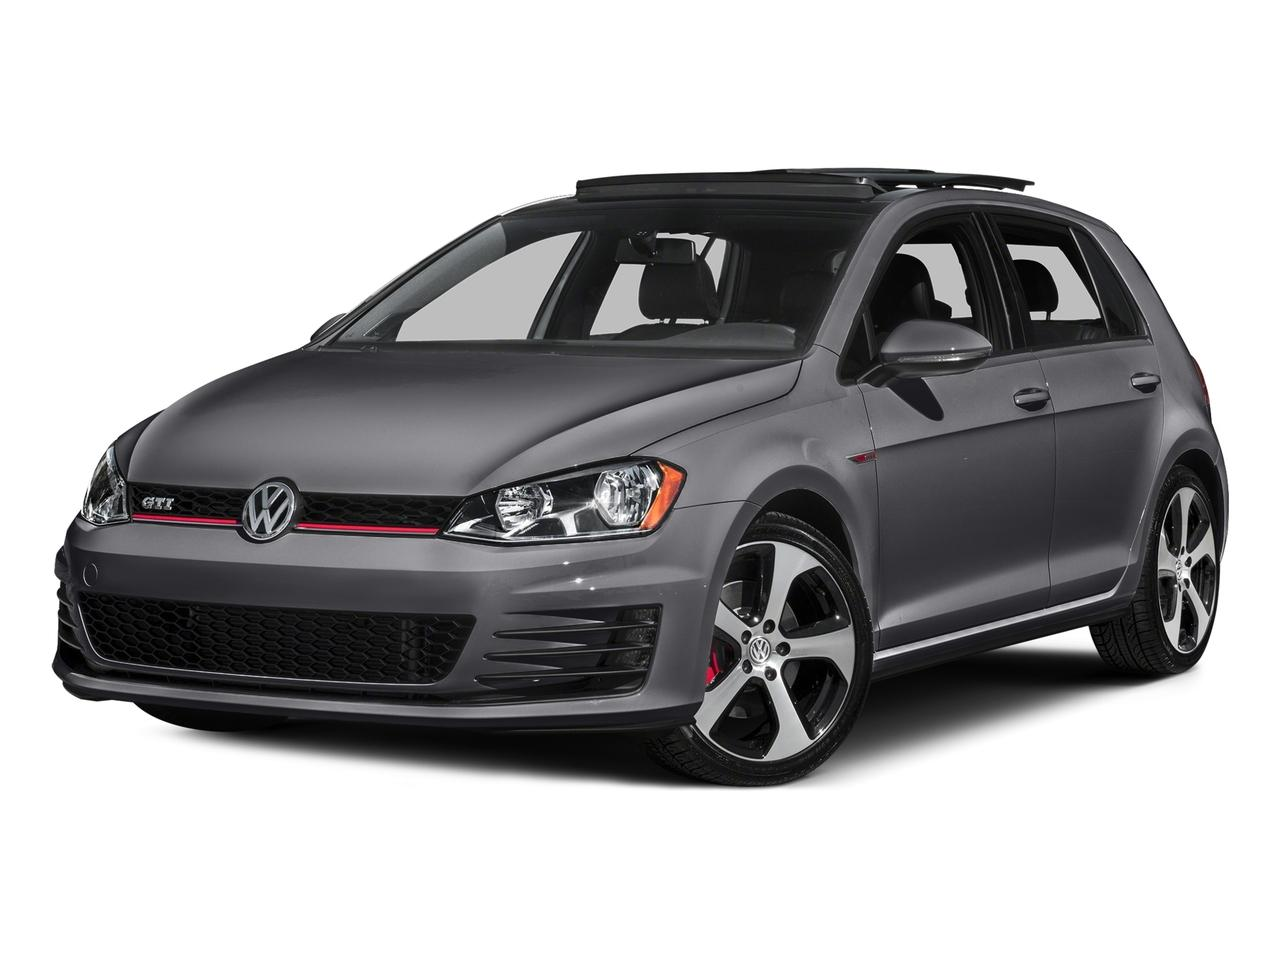 2016 Volkswagen Golf GTI Vehicle Photo in San Antonio, TX 78257